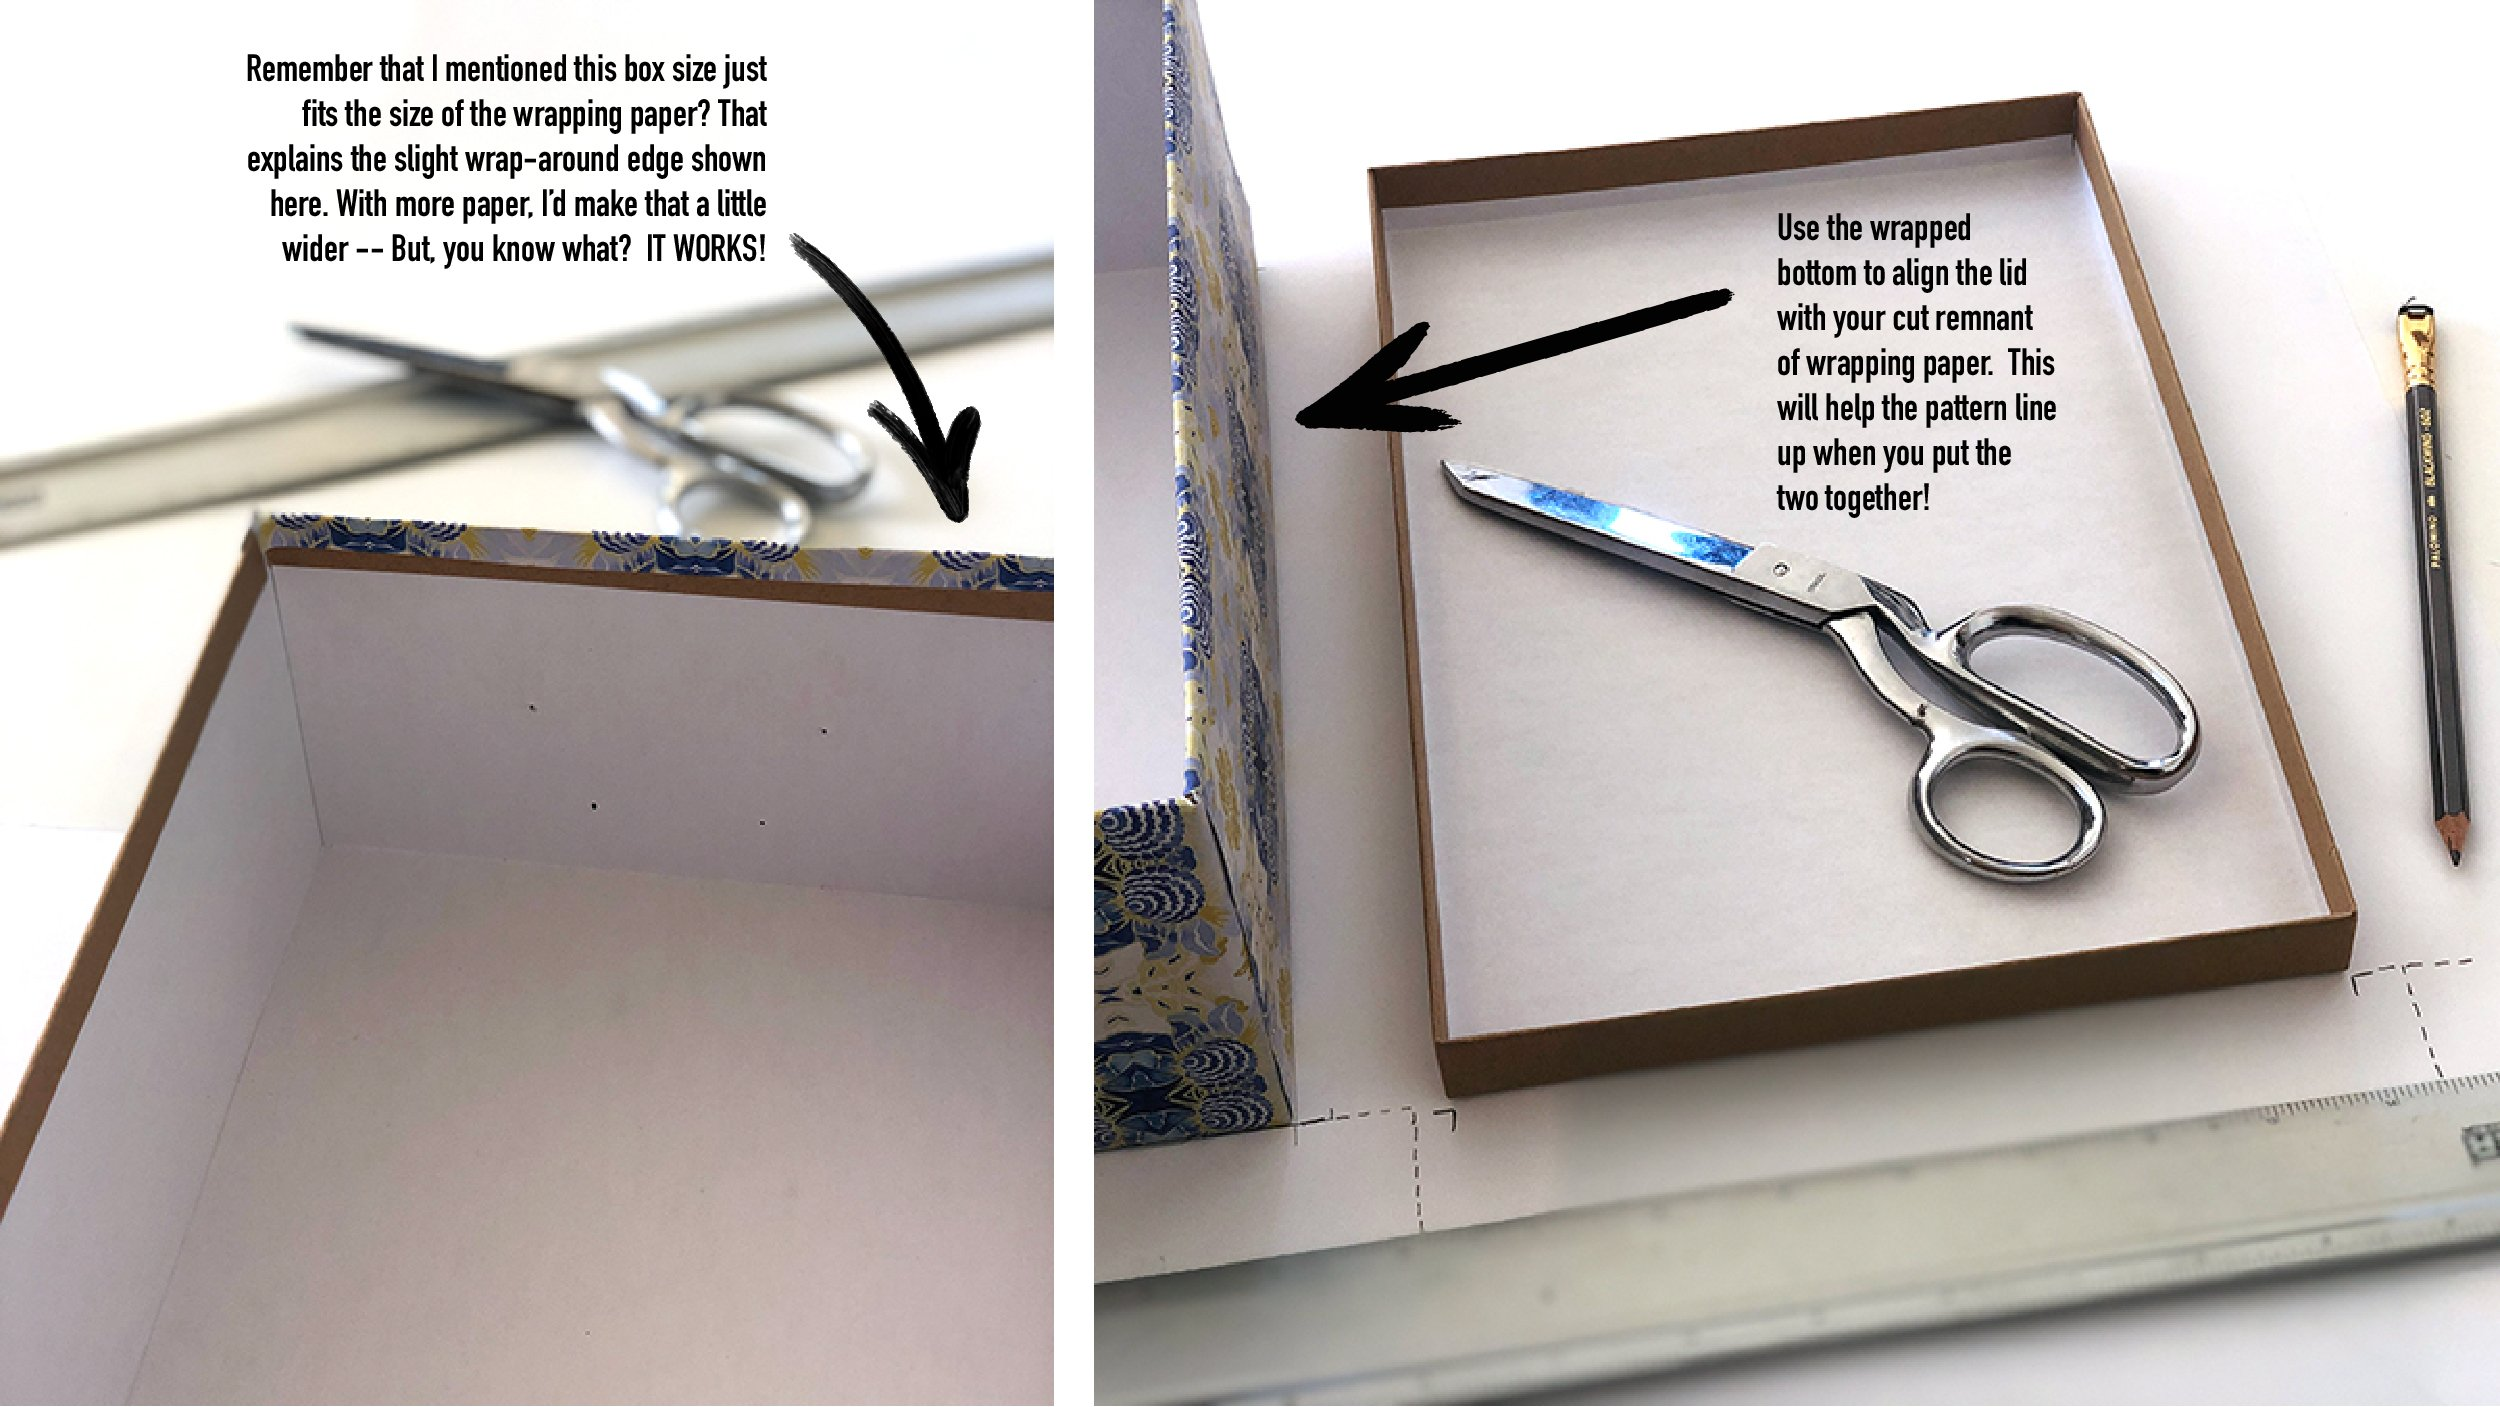 tutorial image showing how to layout a box on wrapping paper to make a two piece wrapped box package